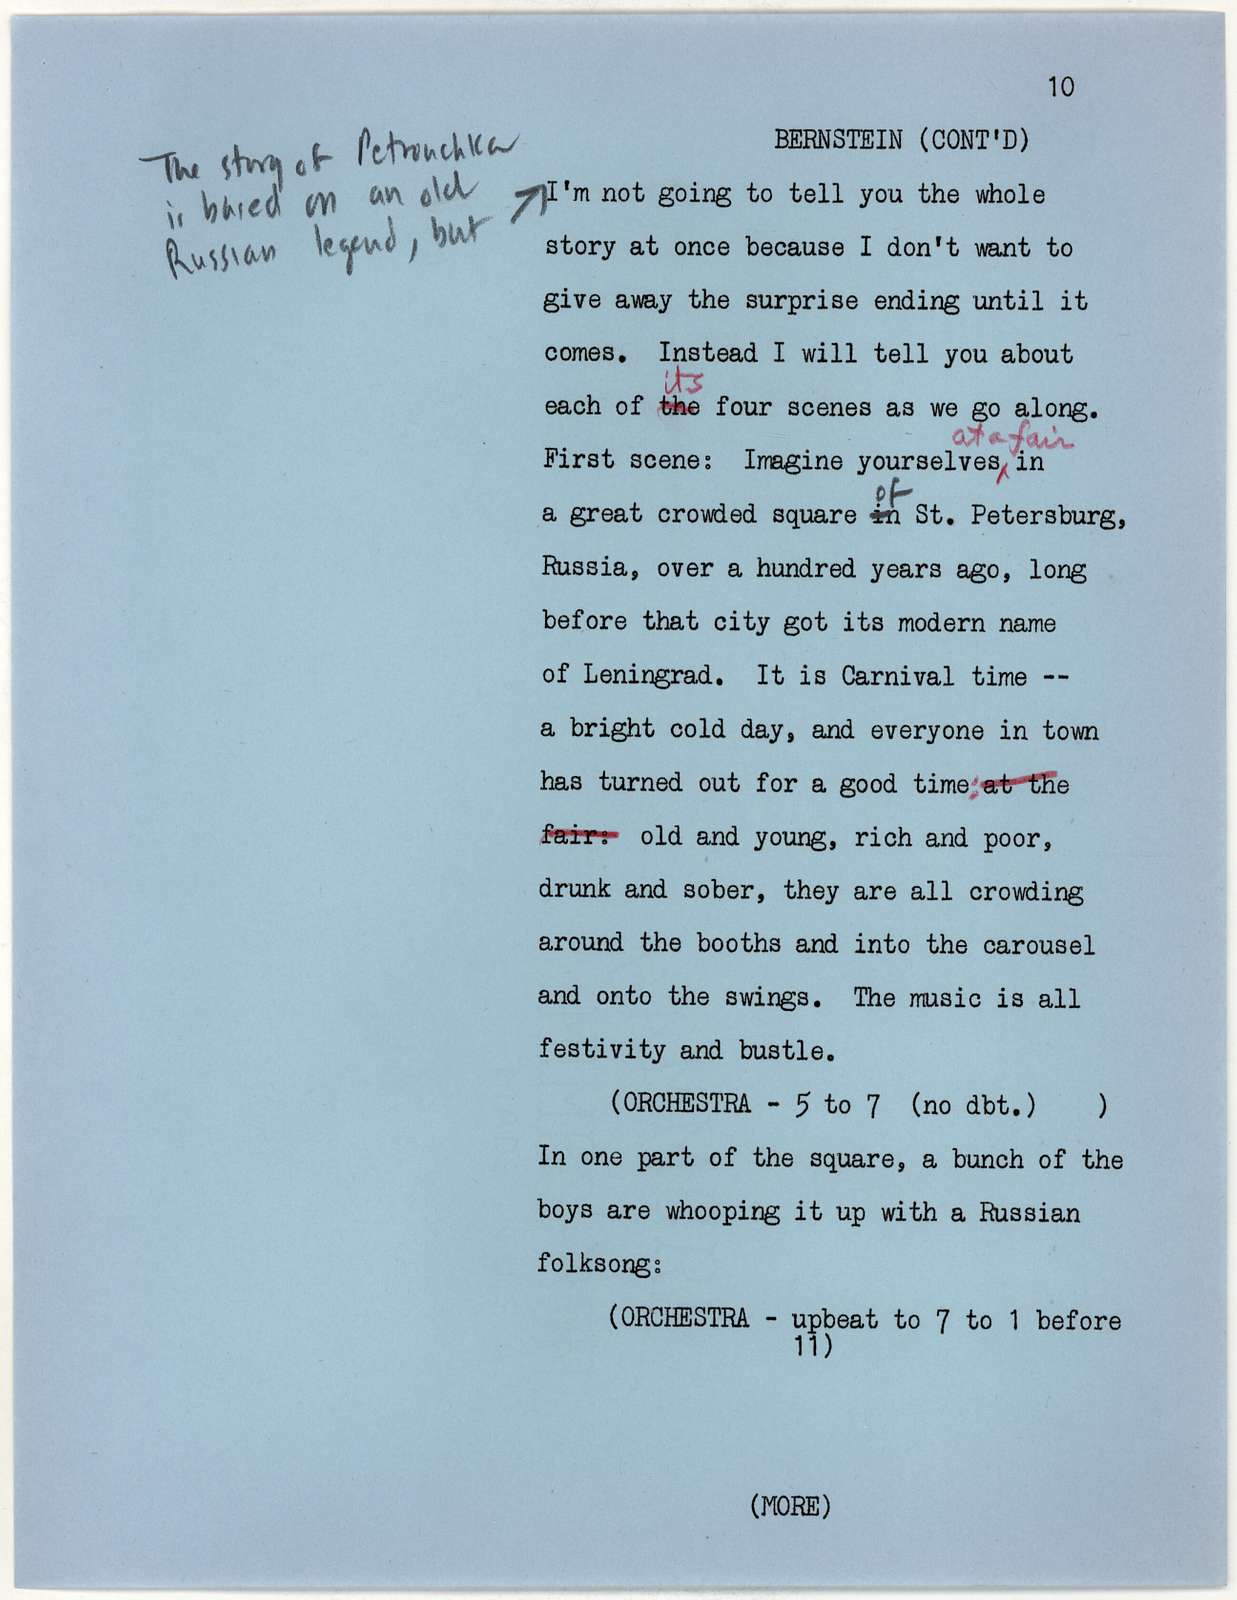 Thursday Evening Previews Scripts: Copland in the Twenties [typescript with emendations in red, blue & black pencil]